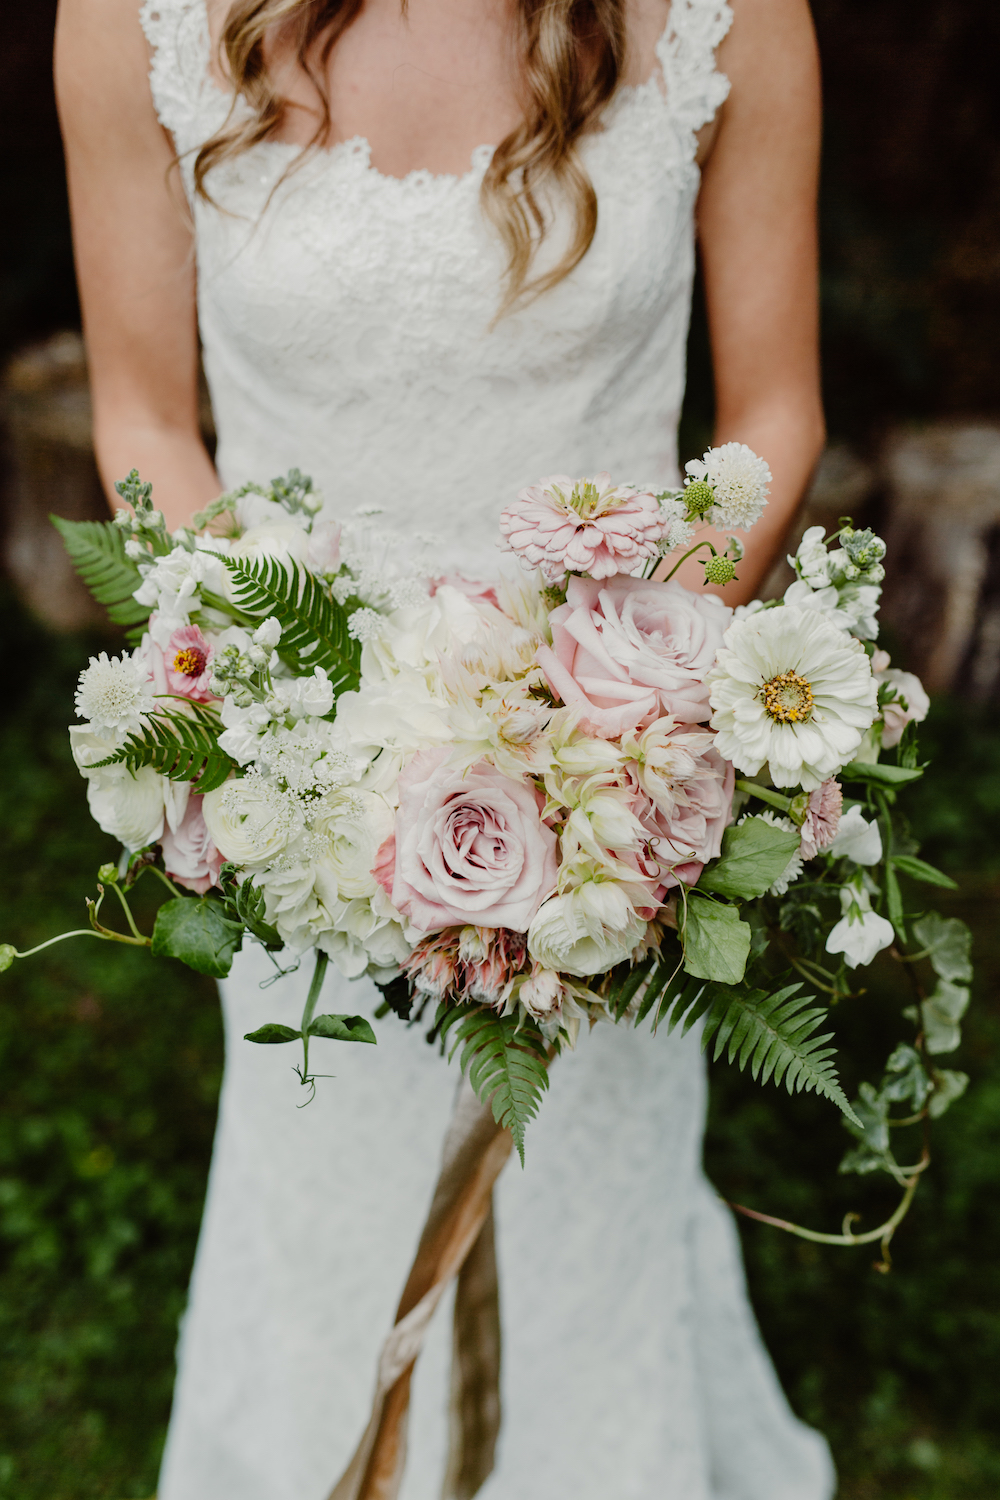 Blush and White Bridal Bouquet - Stone house Creative